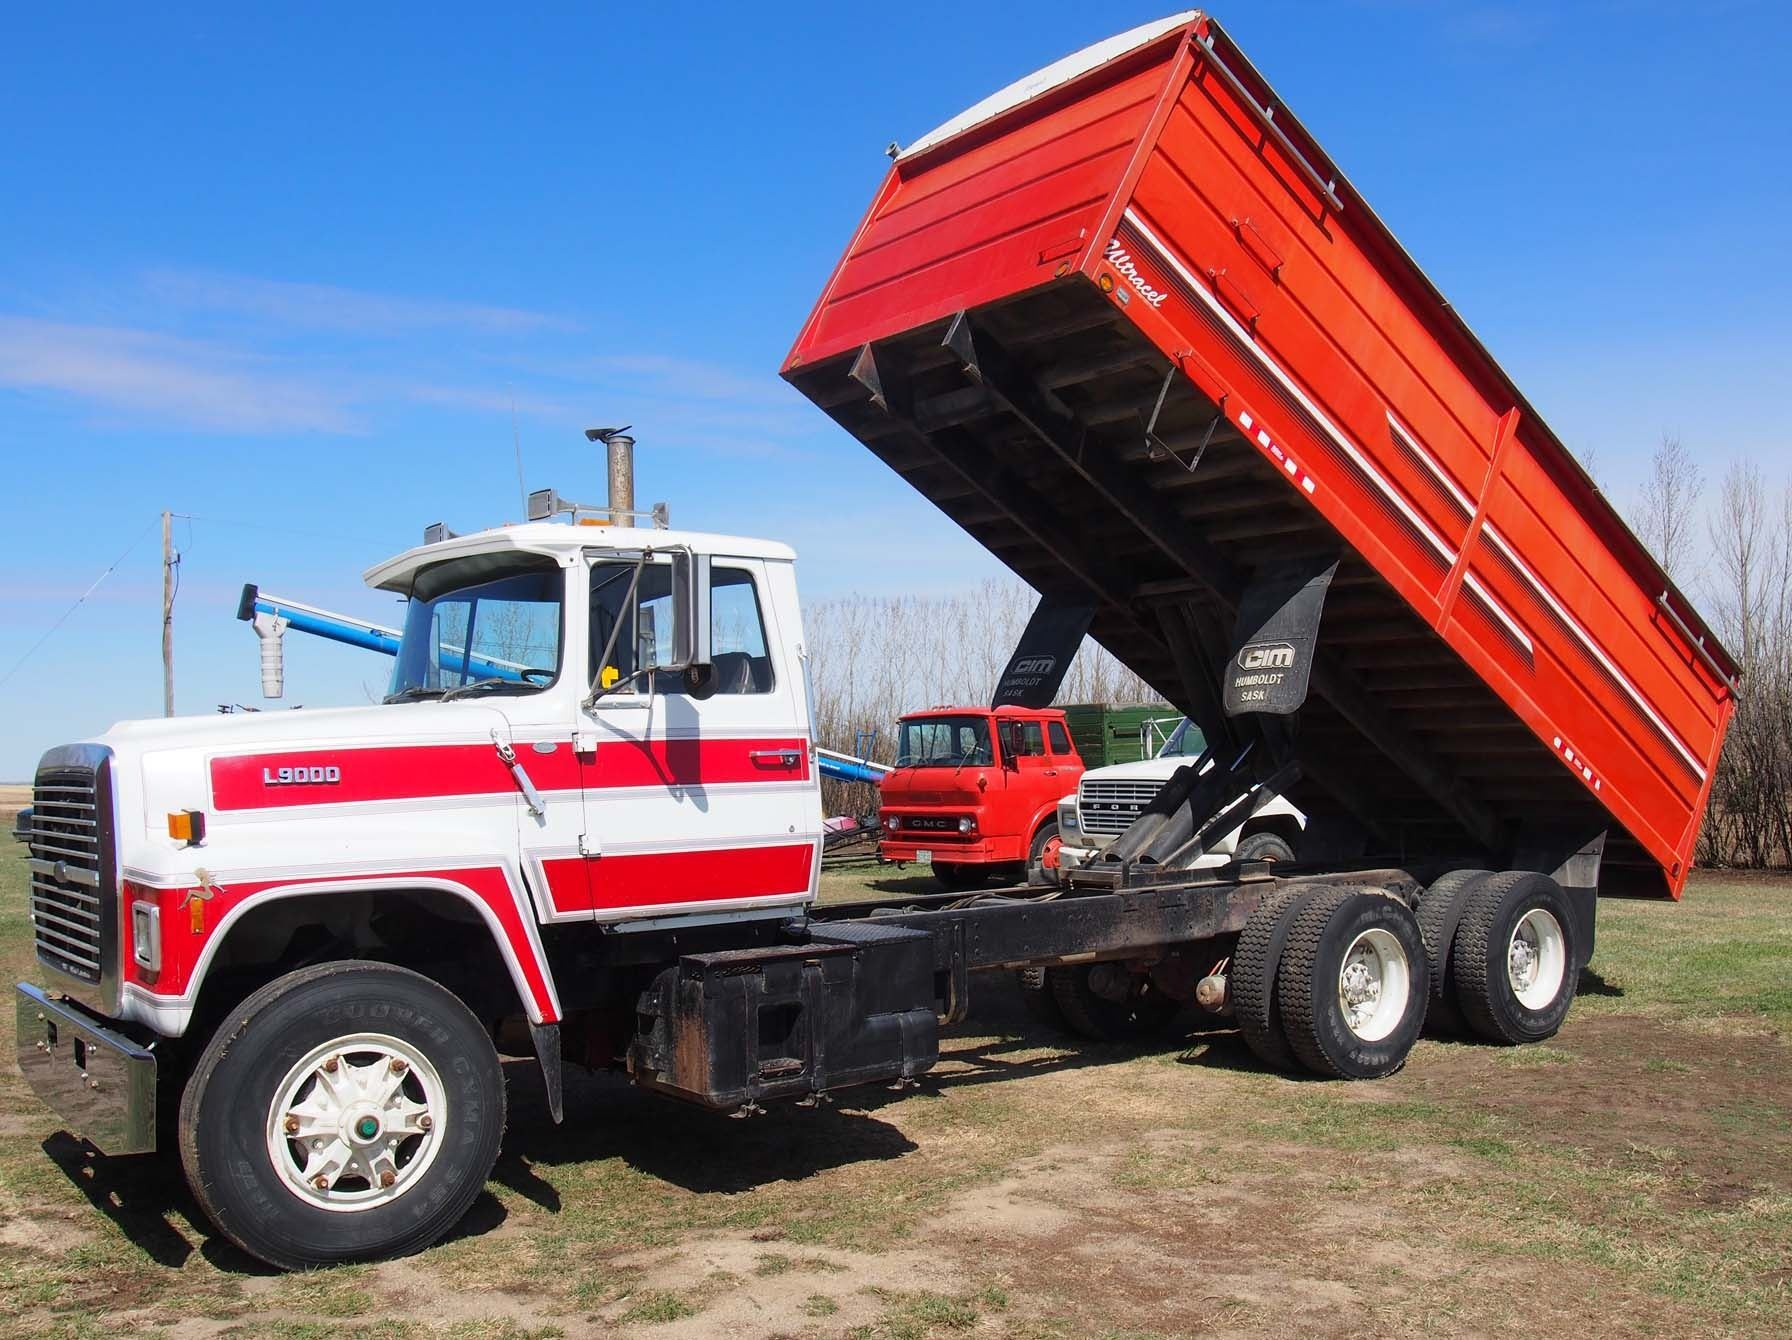 medium resolution of  image 11 1988 ford l9000 tandem truck 855 cummings engine 20 box and